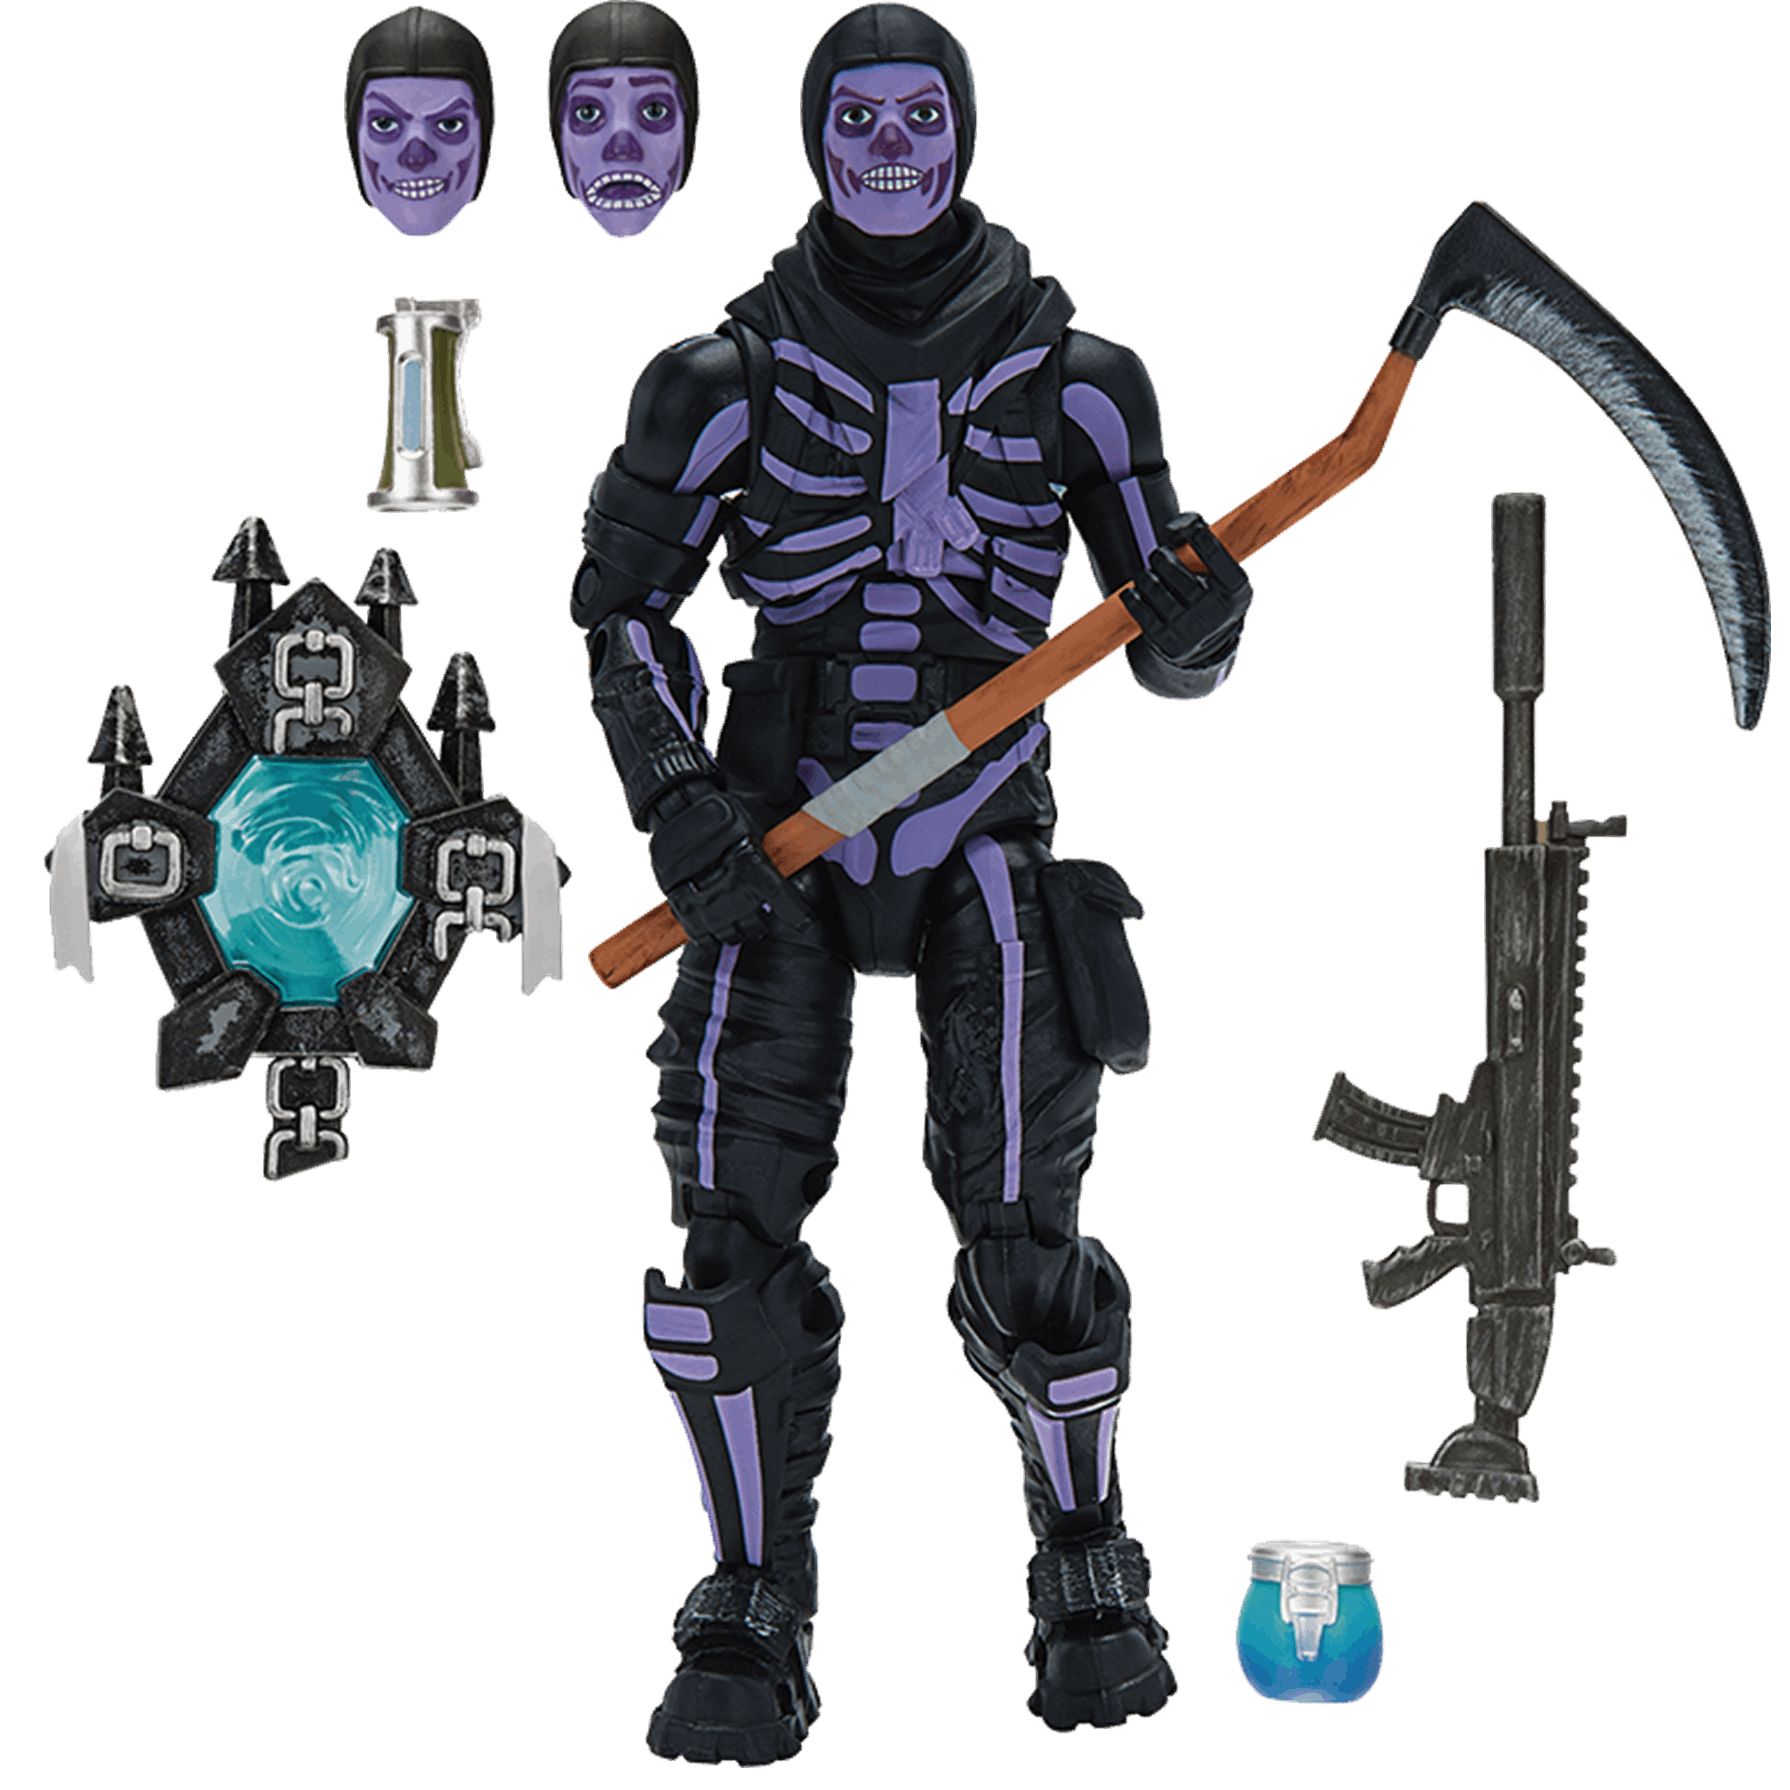 Fortnite Figura Pack Skull Trooper 15 cm con accesorios